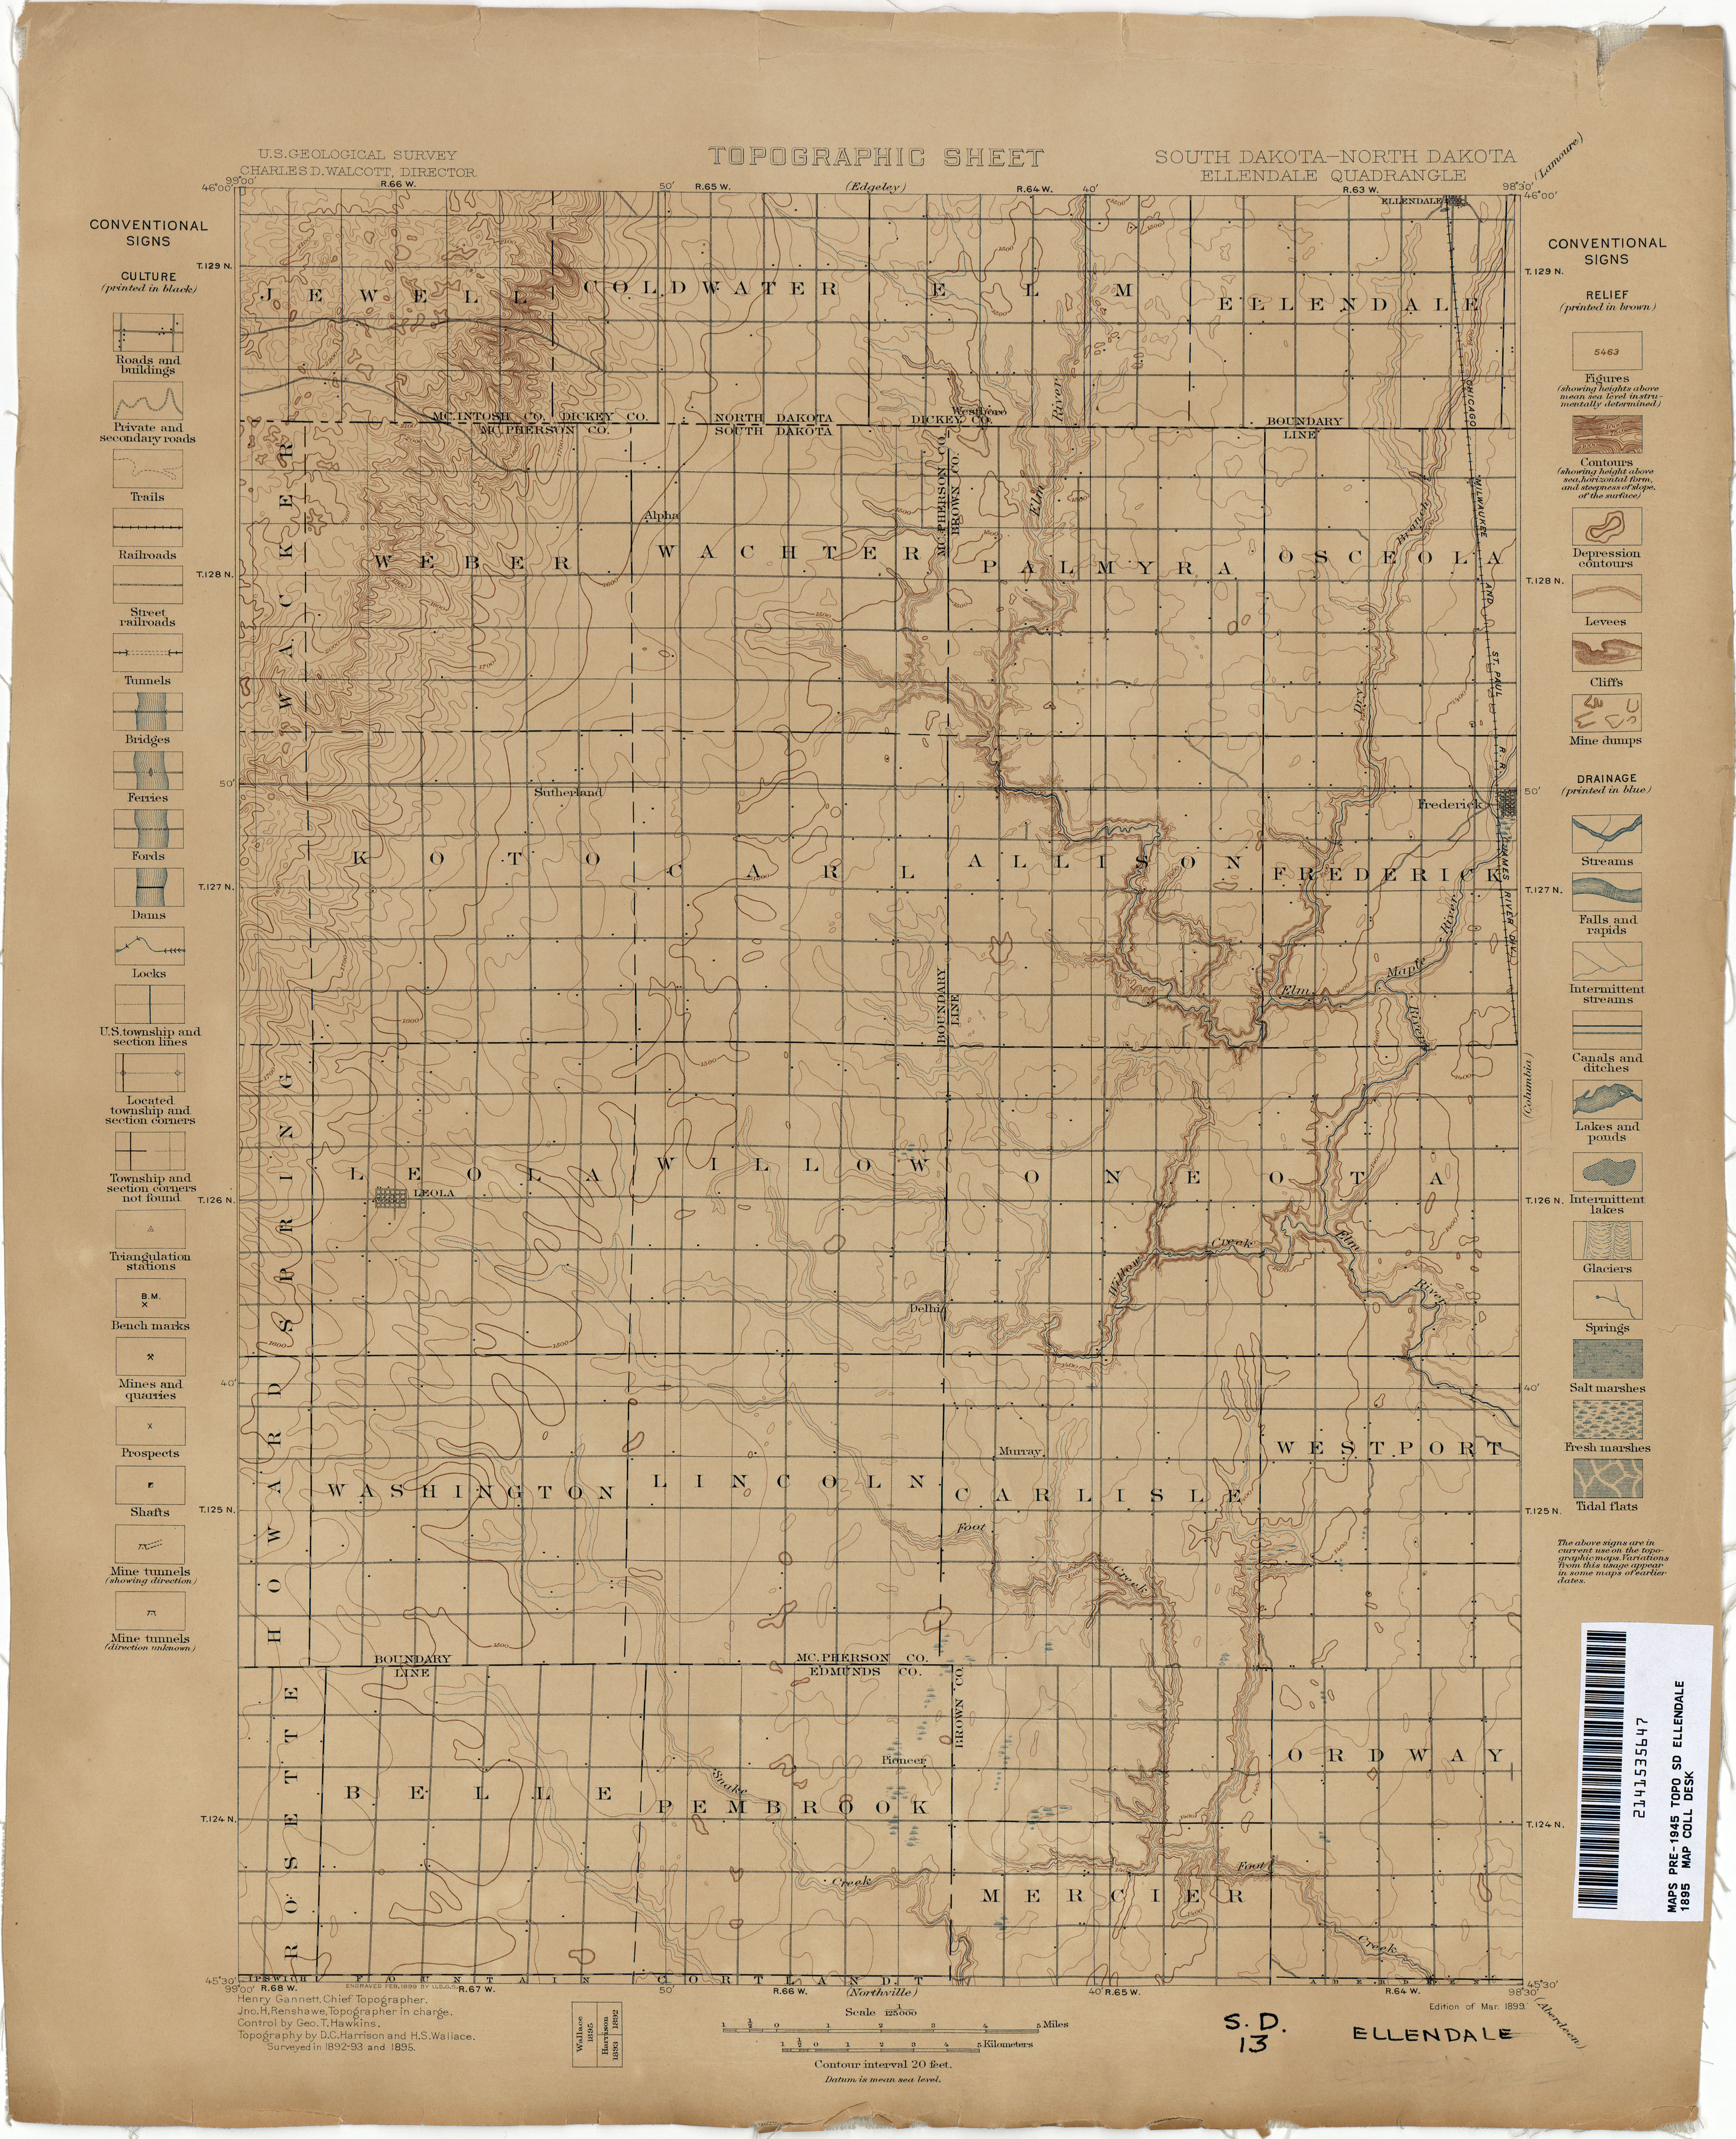 North Dakota Historical Topographic Maps - Perry-Castañeda ... on carrington nd map, foster county nd map, carrington north dakota weather, carrington nd weather, carrington north dakota hotels, fortuna nd map, mohall nd map, kensal nd map, cavalier nd map,